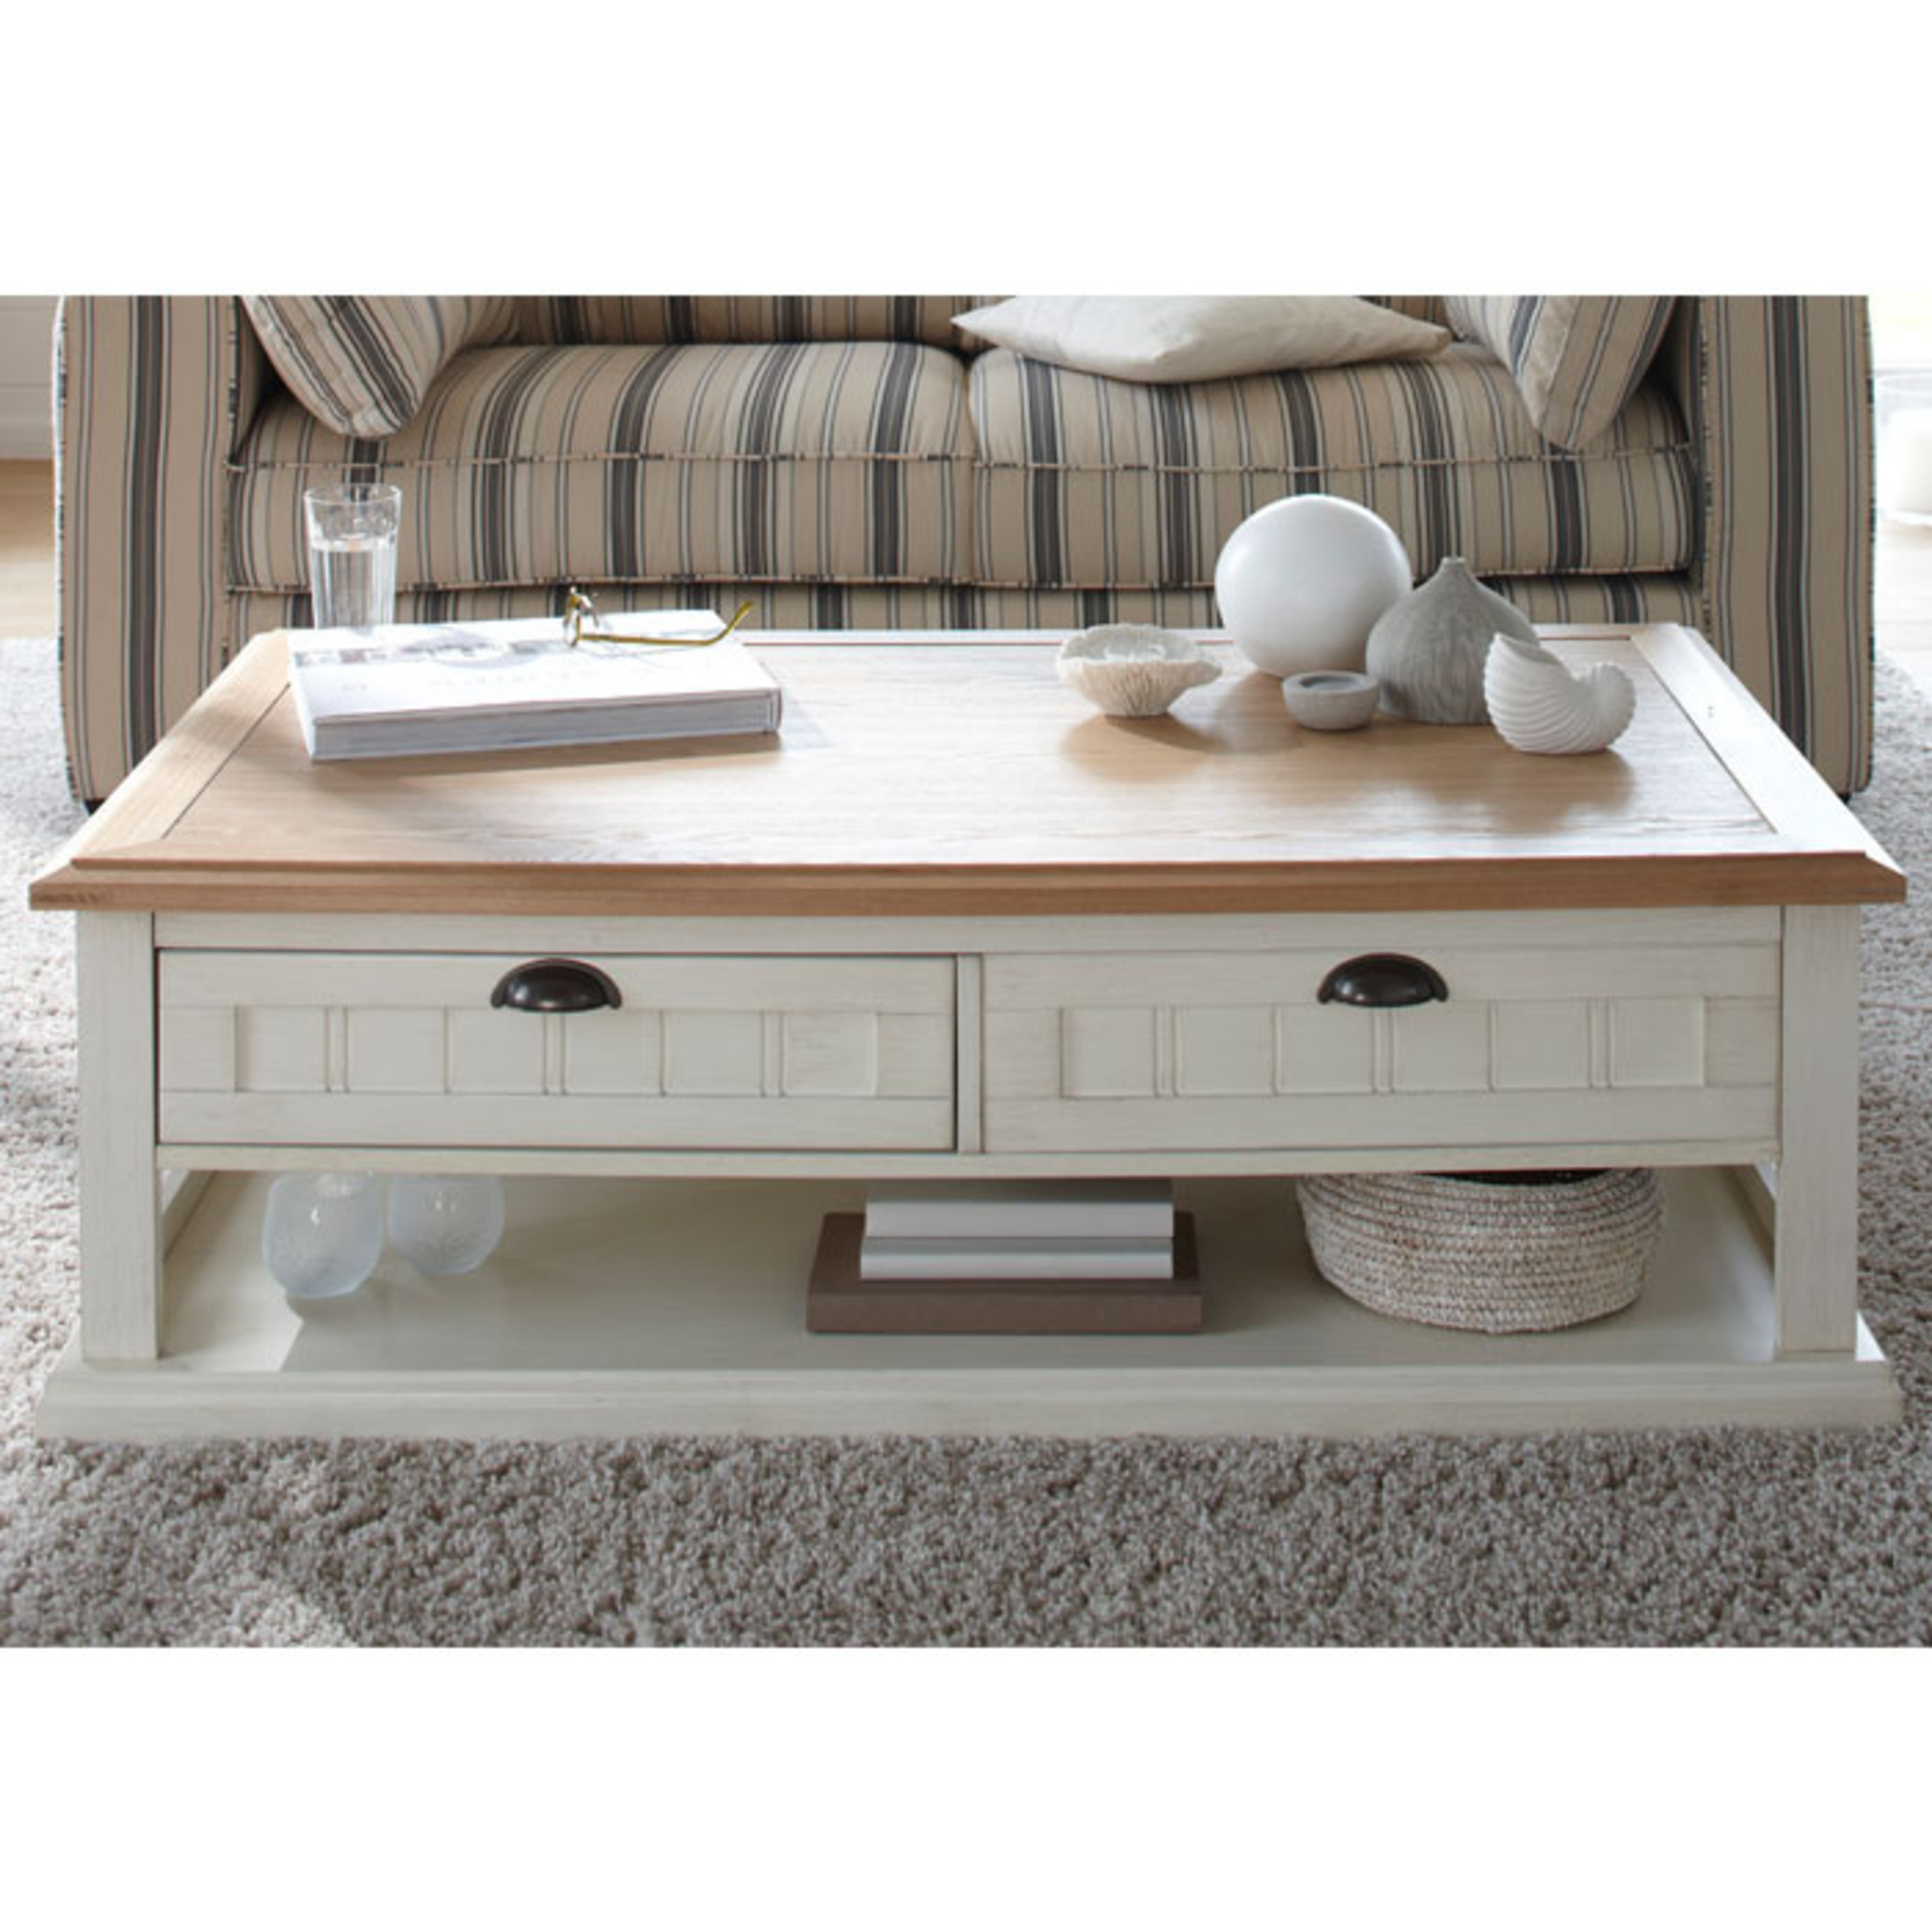 Table basse rectangulaire 2 tiroirs berling blanc patin for Table basse de la maison